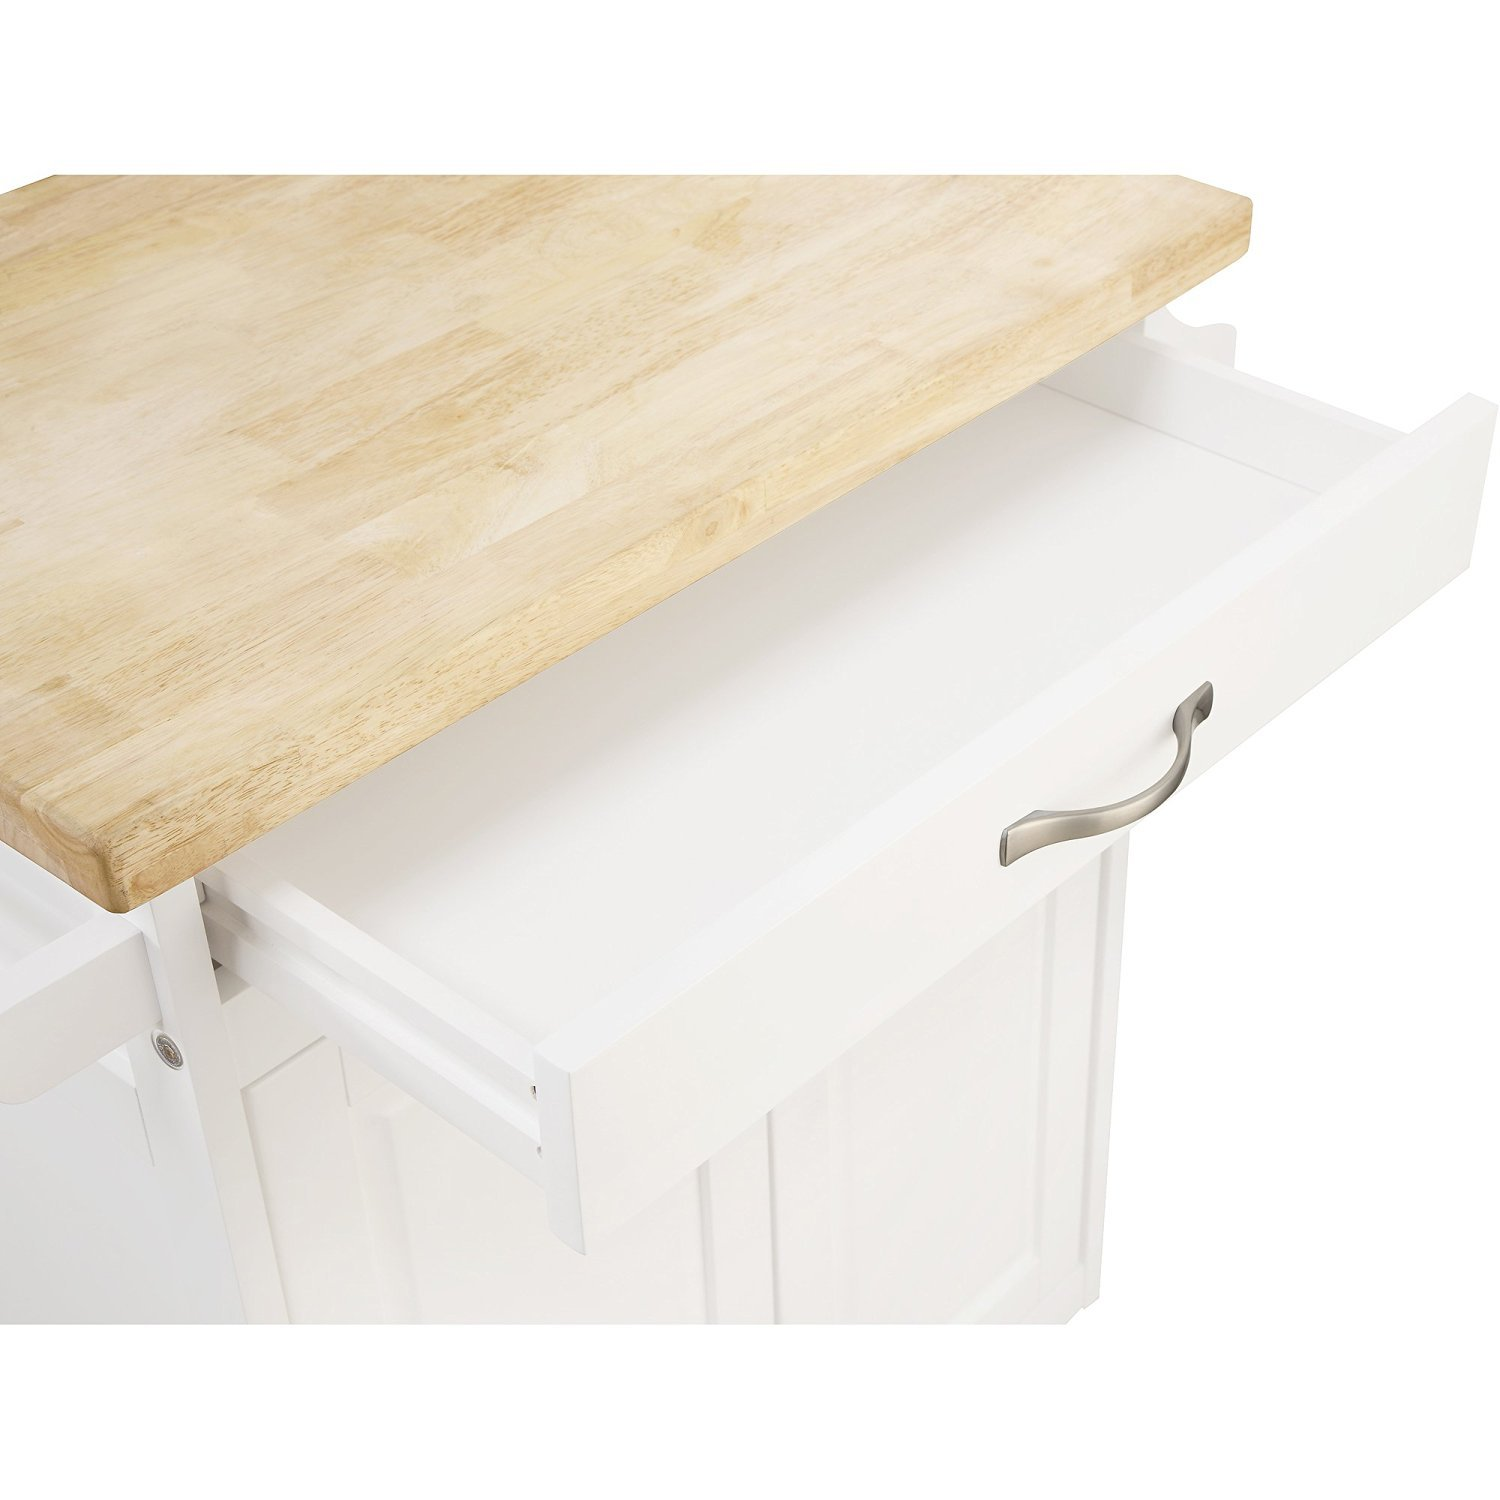 Kitchen Cart Rolling Island Storage Unit Cabinet Utility Portable Home Microwave Wheels Butcher Wood Top Drawer Shelf (White) by Mainstay (Image #4)